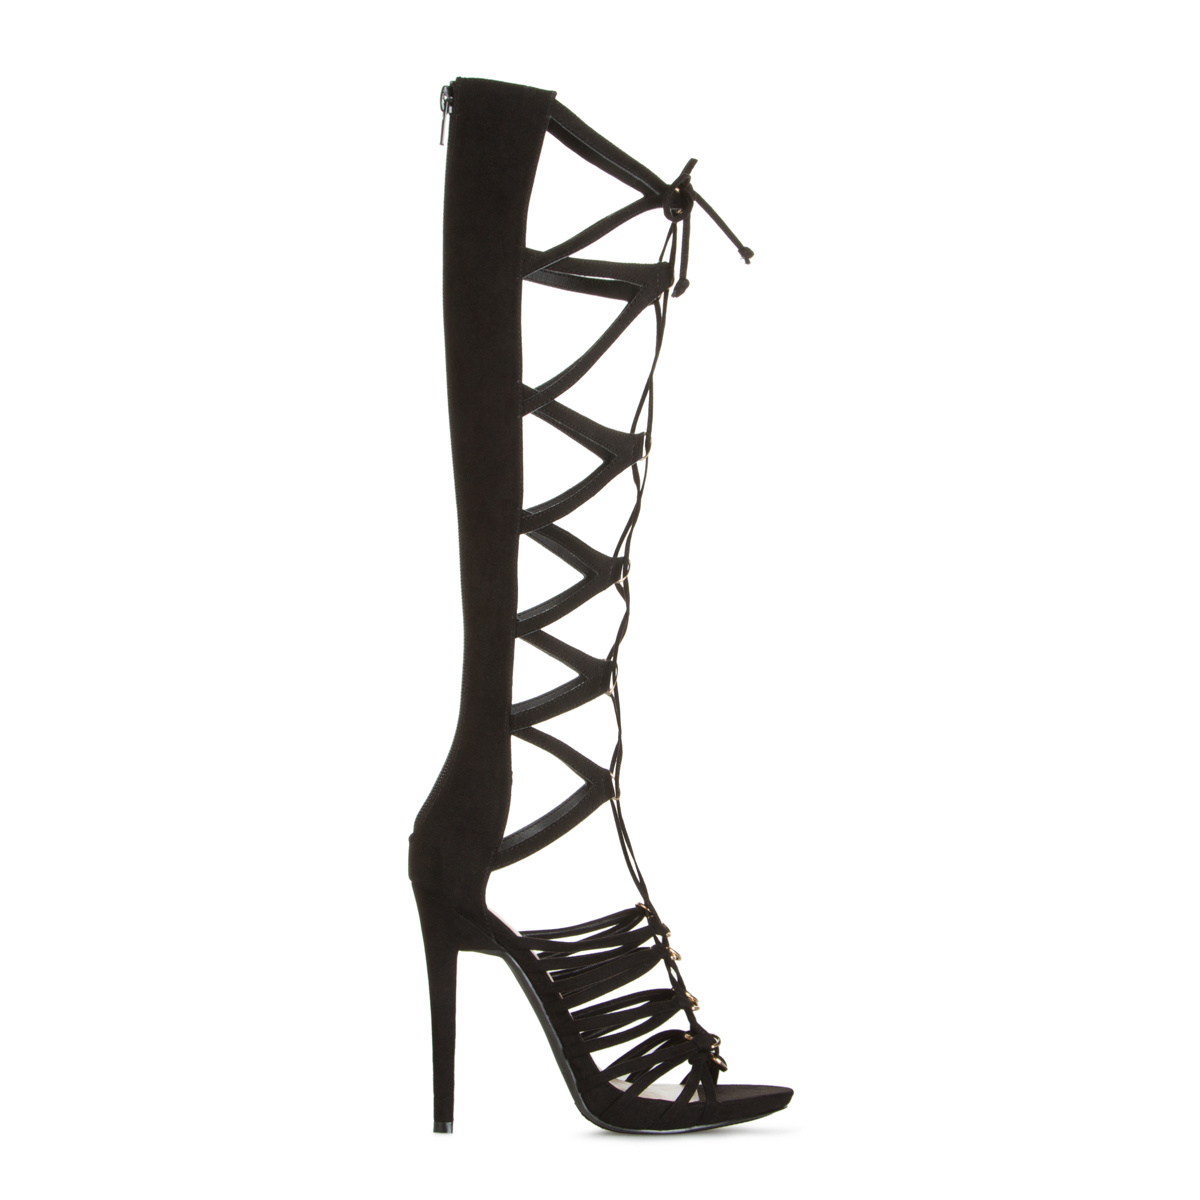 Women's High Heels, Sexy Black Heels, Strappy Sandals, Kitten Heel ...